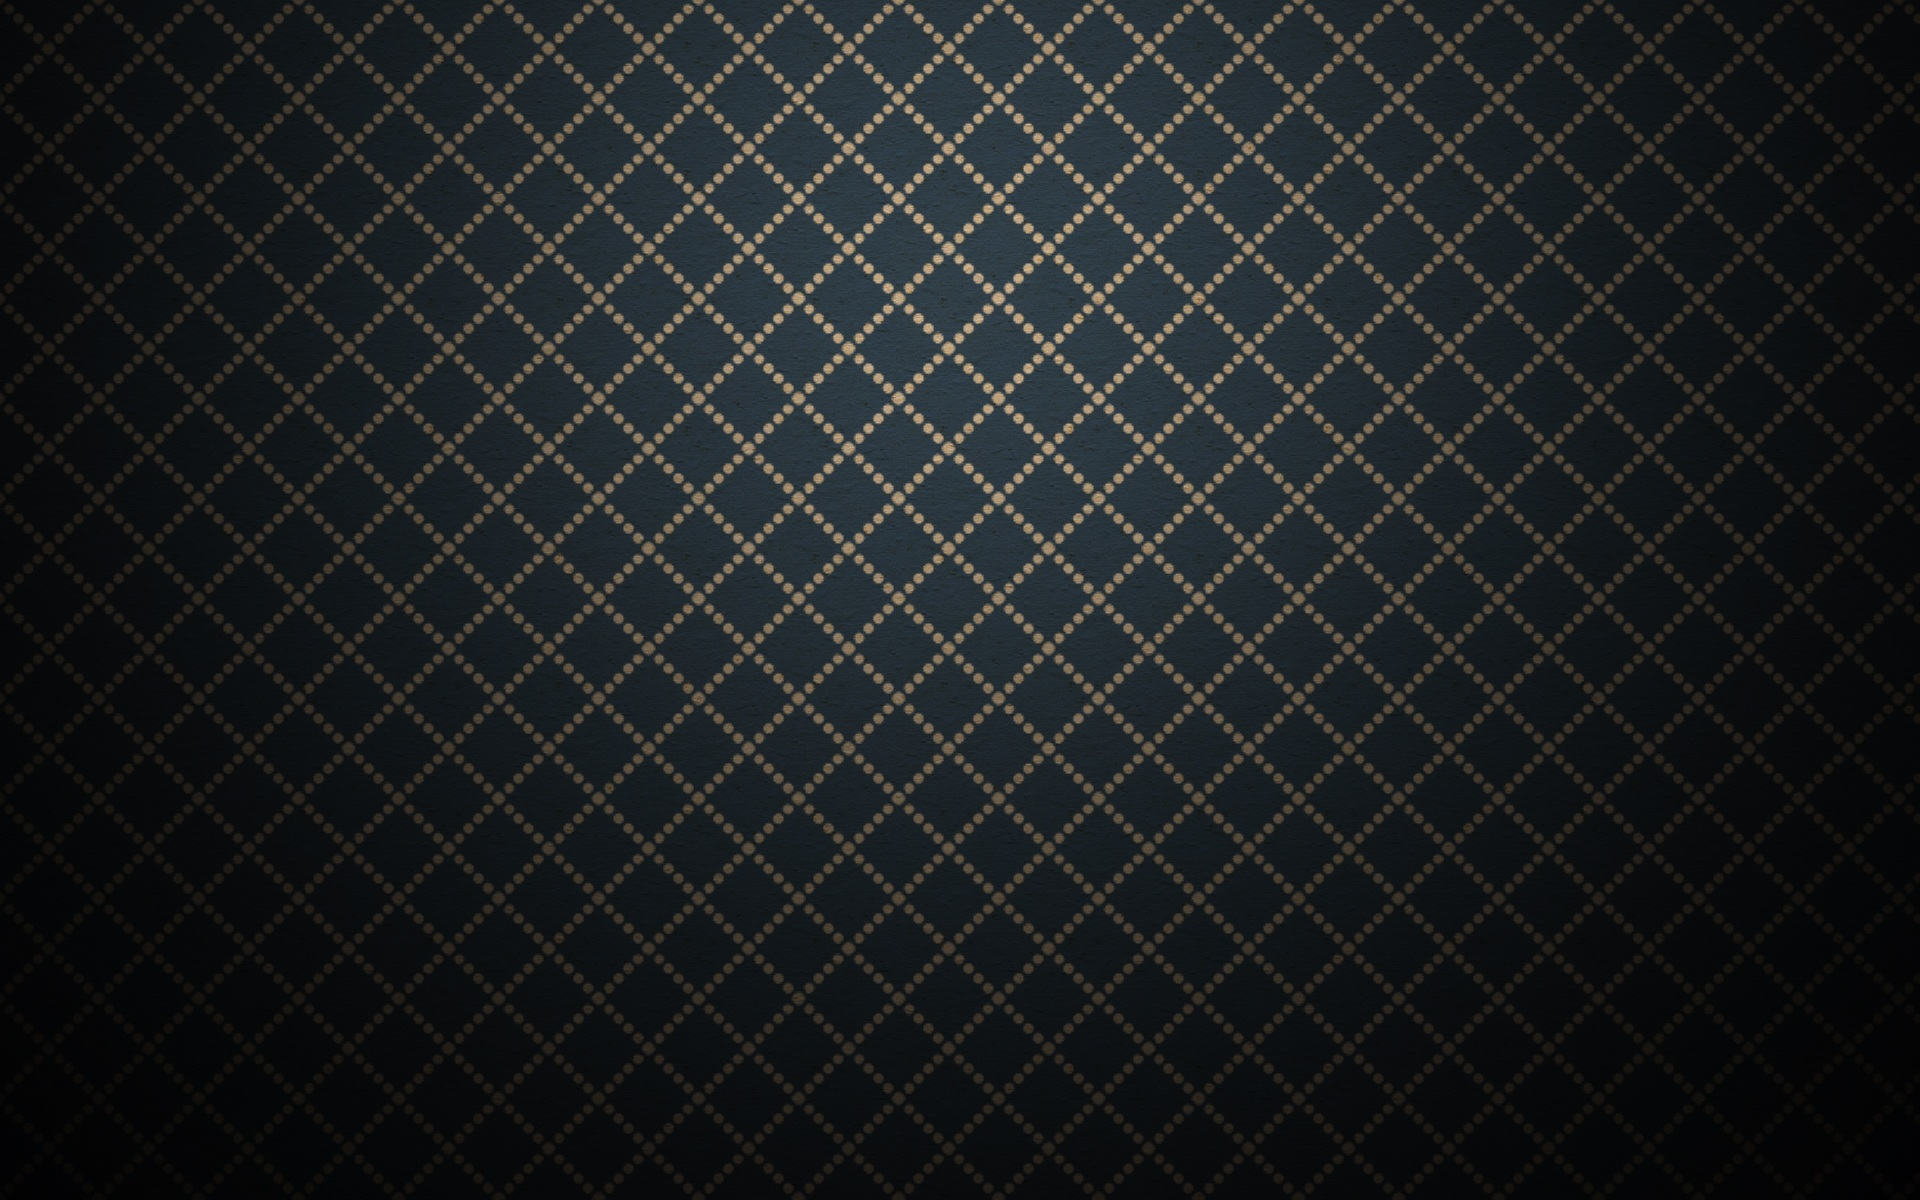 Black Pattern Wallpaper | Full HD Wallpapers Points Wallpaper